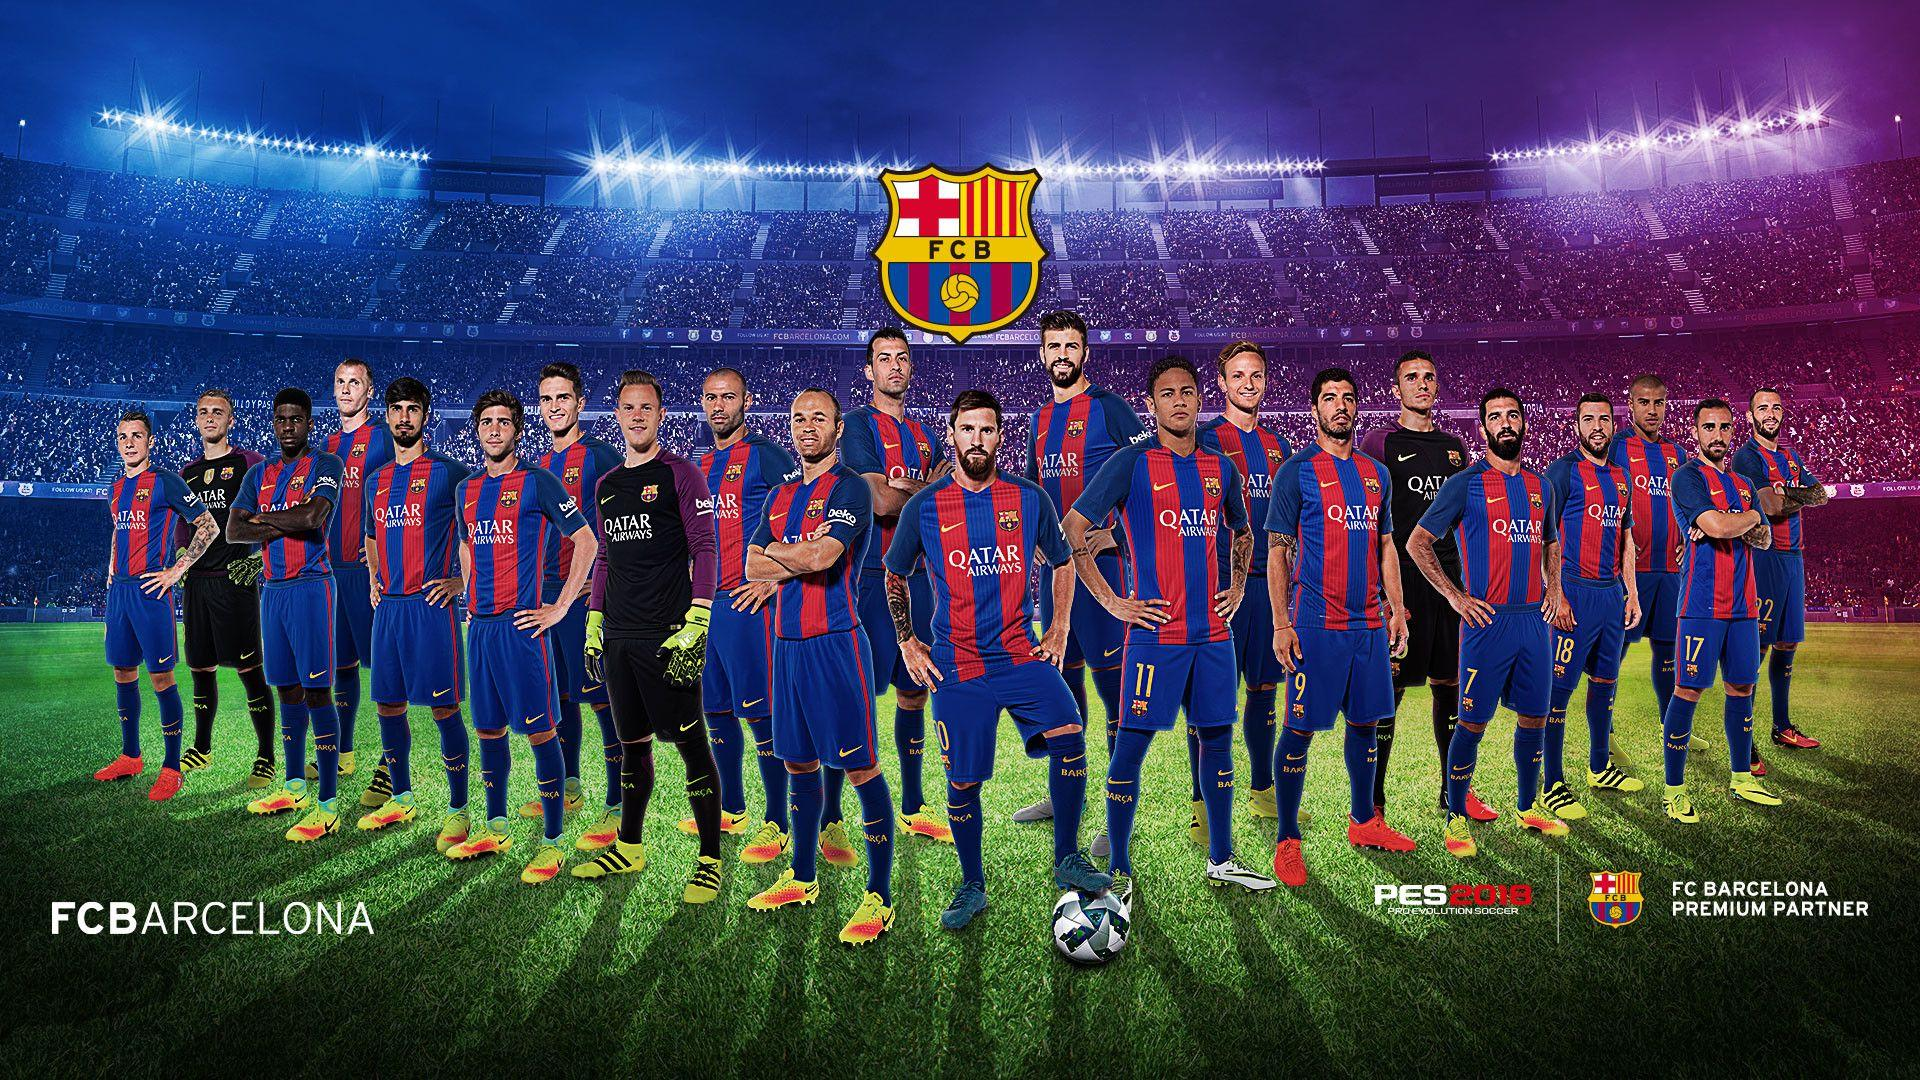 fc barcelona 2018 wallpapers - wallpaper cave